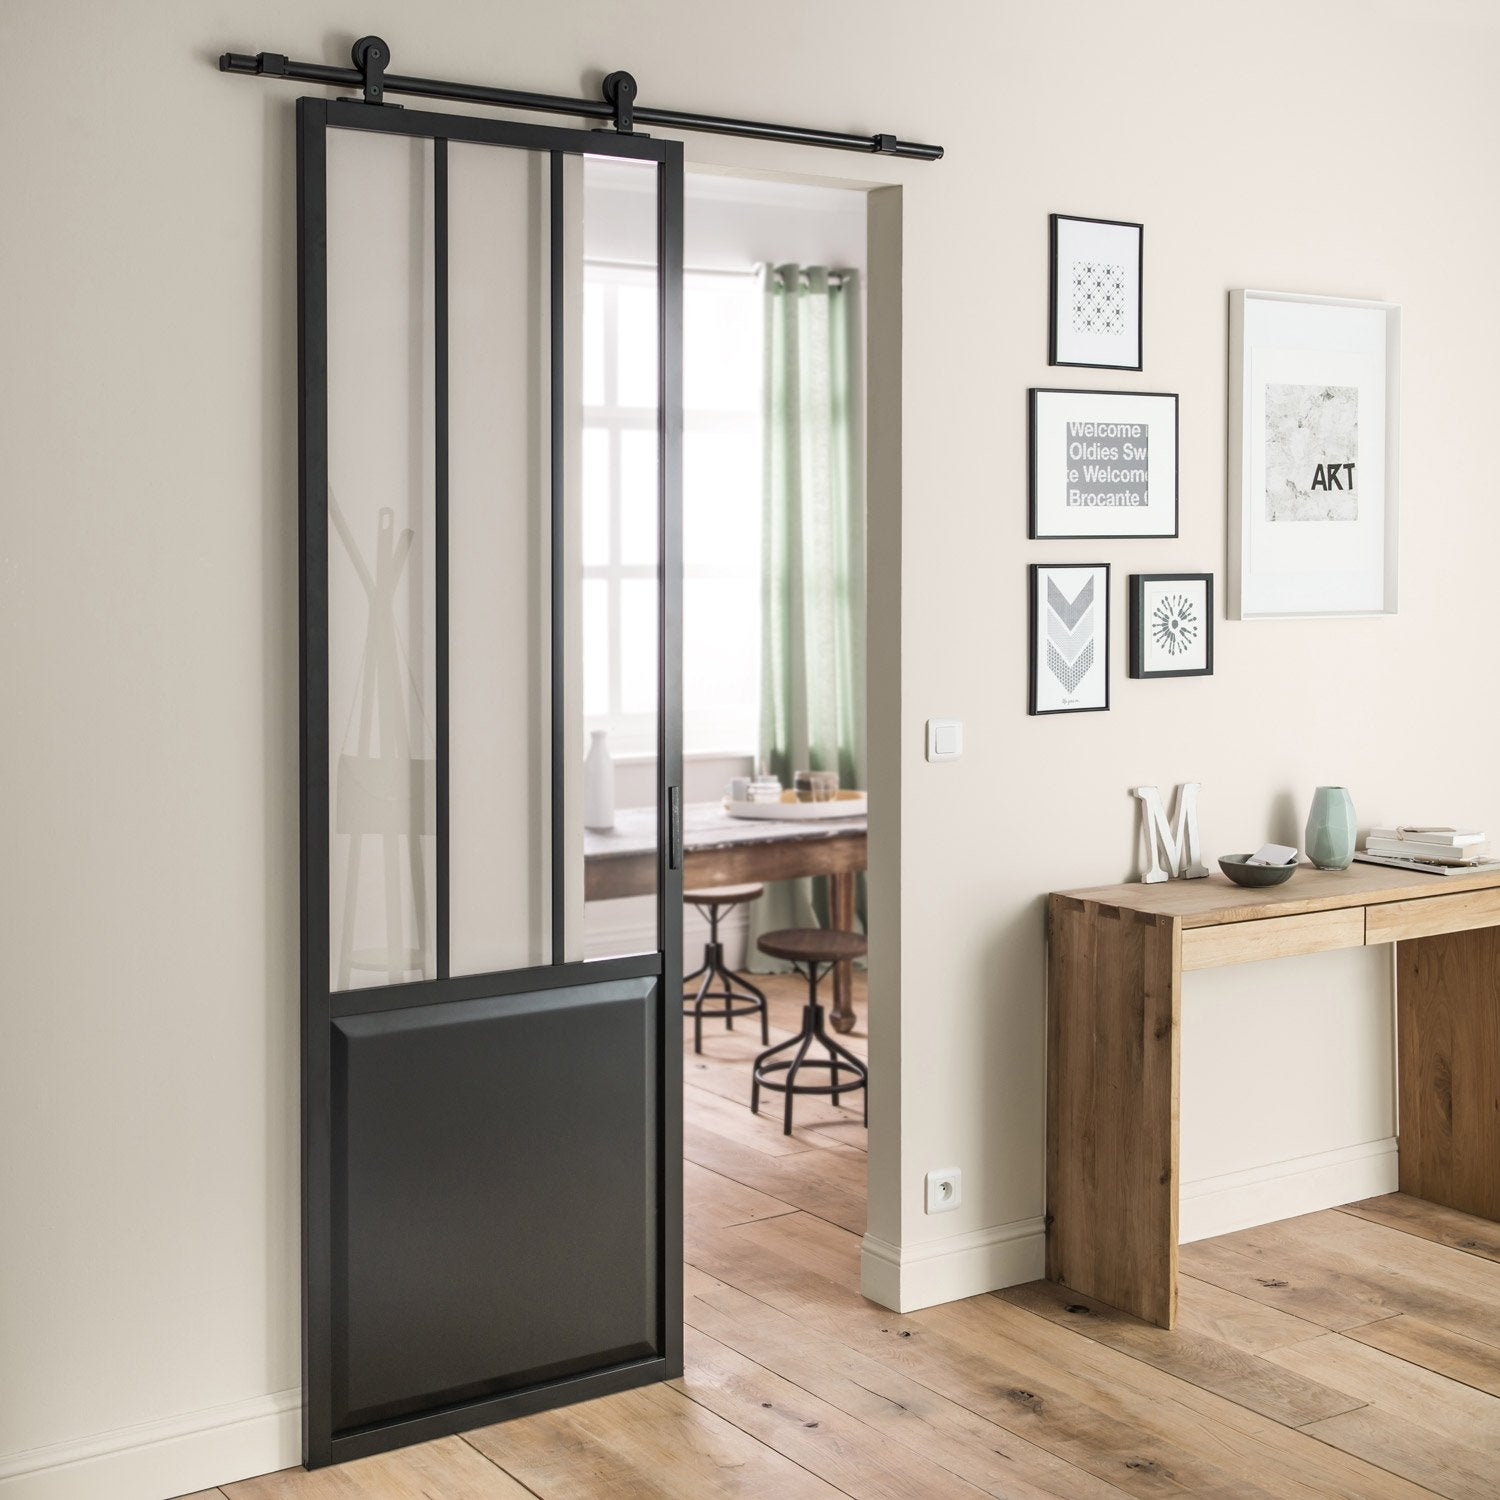 ensemble porte coulissante atelier mdf rev tu avec le rail bol ro noir leroy merlin. Black Bedroom Furniture Sets. Home Design Ideas